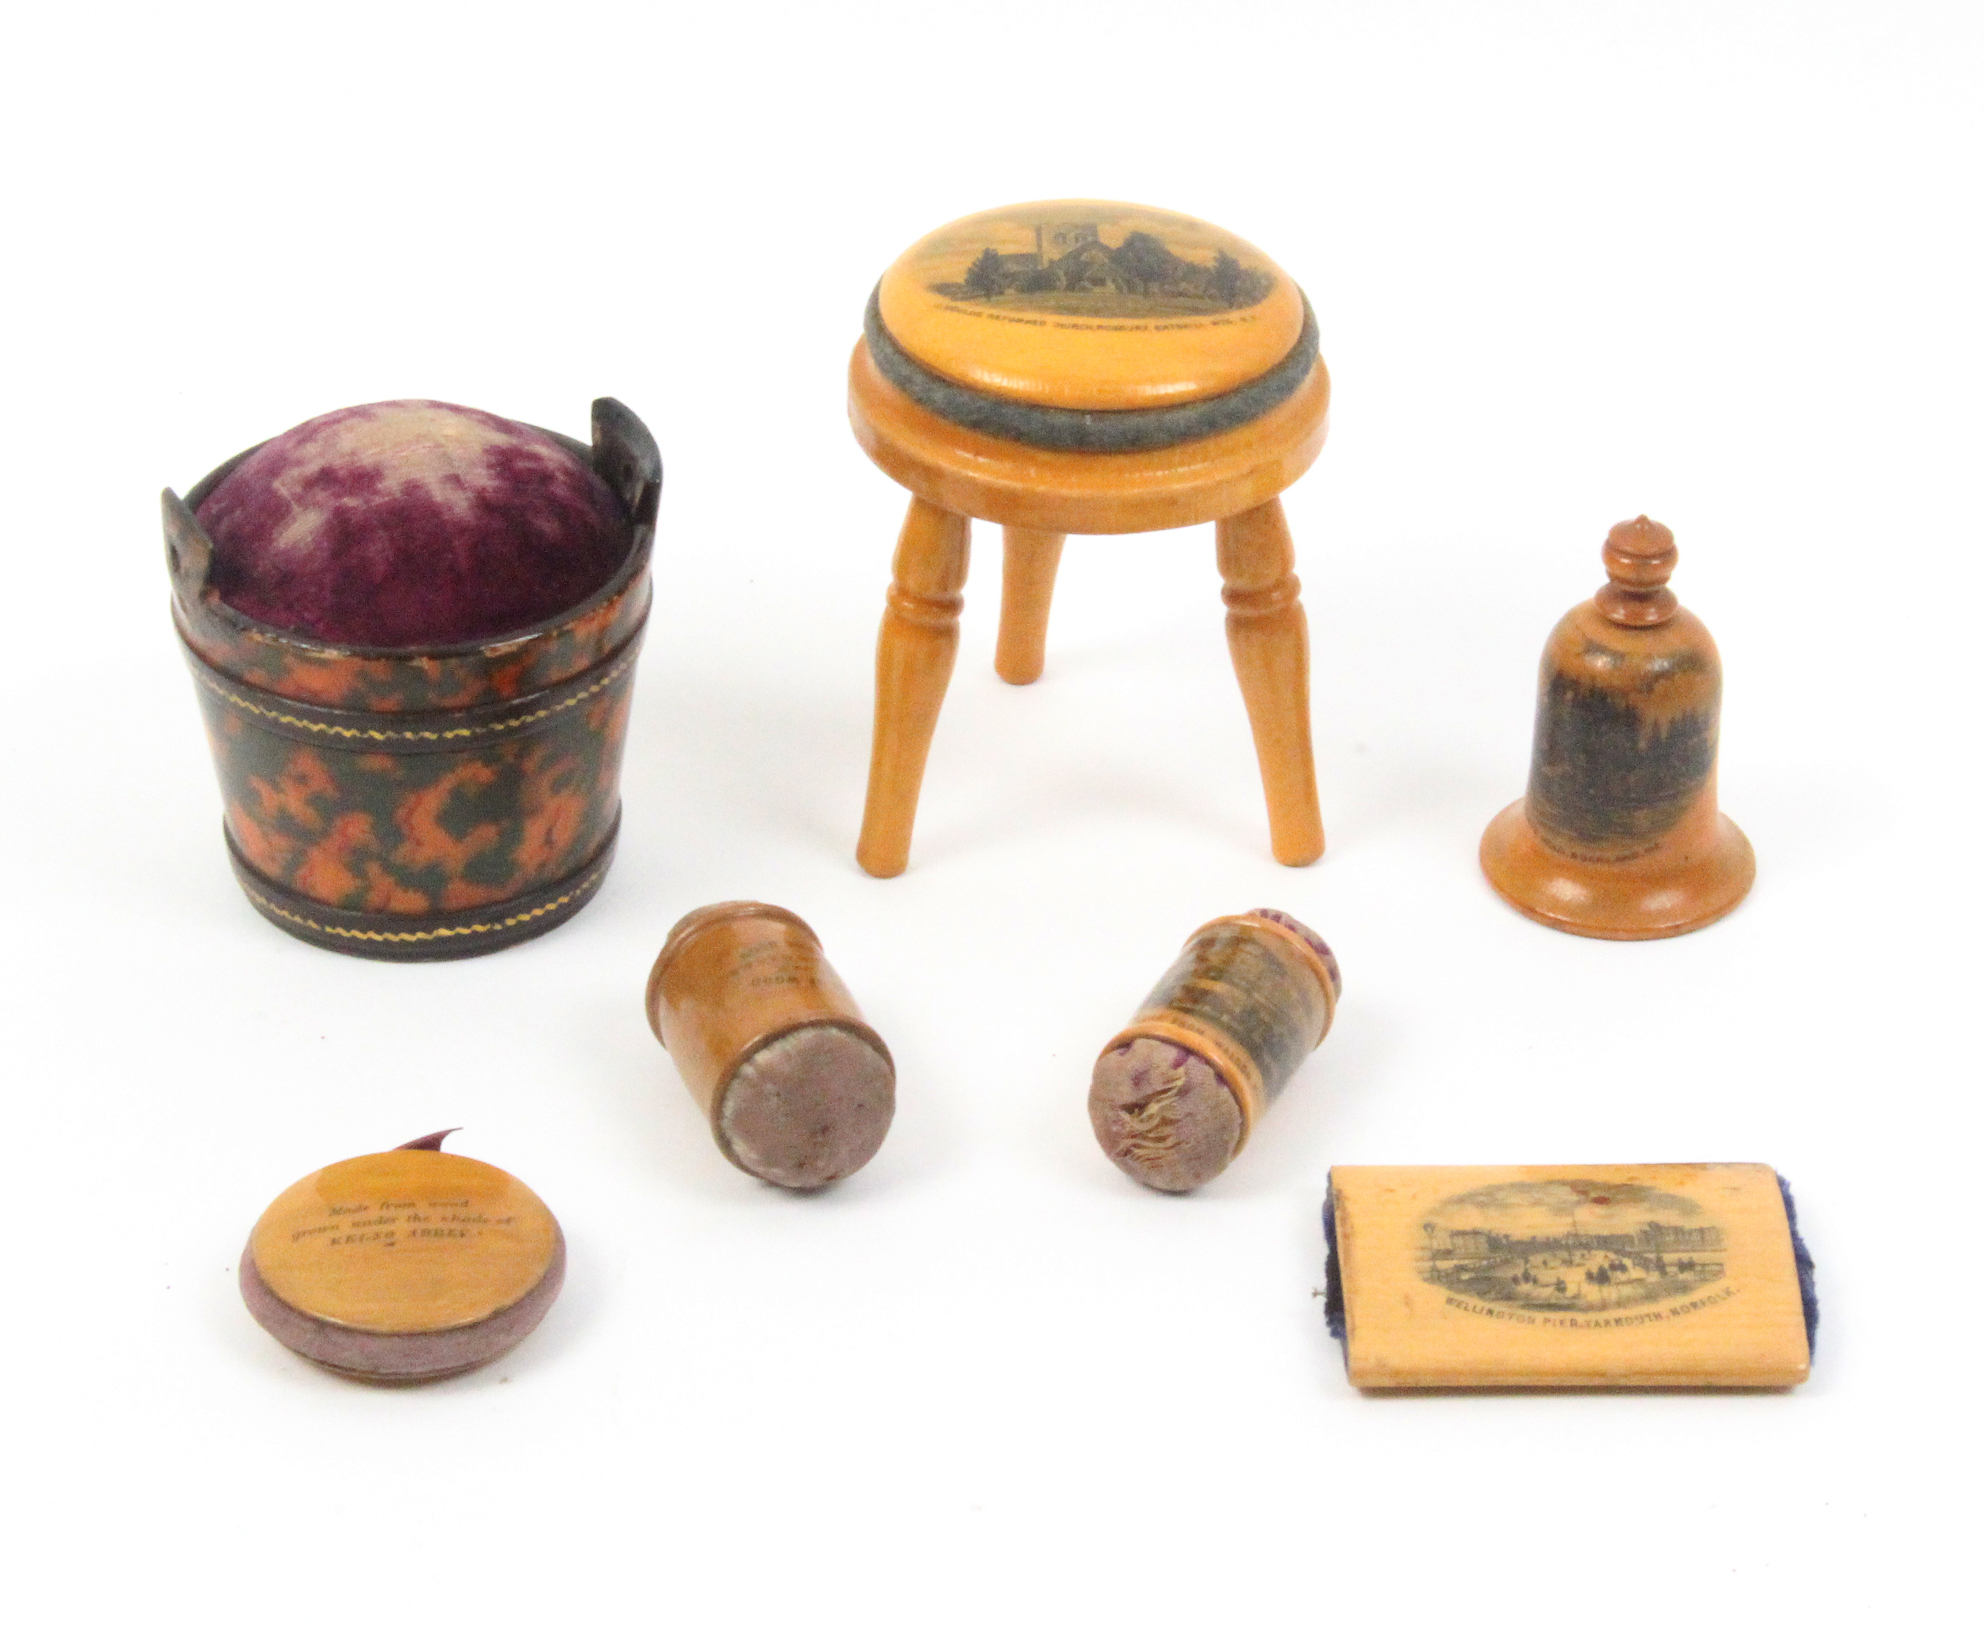 Mauchline ware - sewing - seven pieces comprising a pincushion in the form of a stool (J. Gould